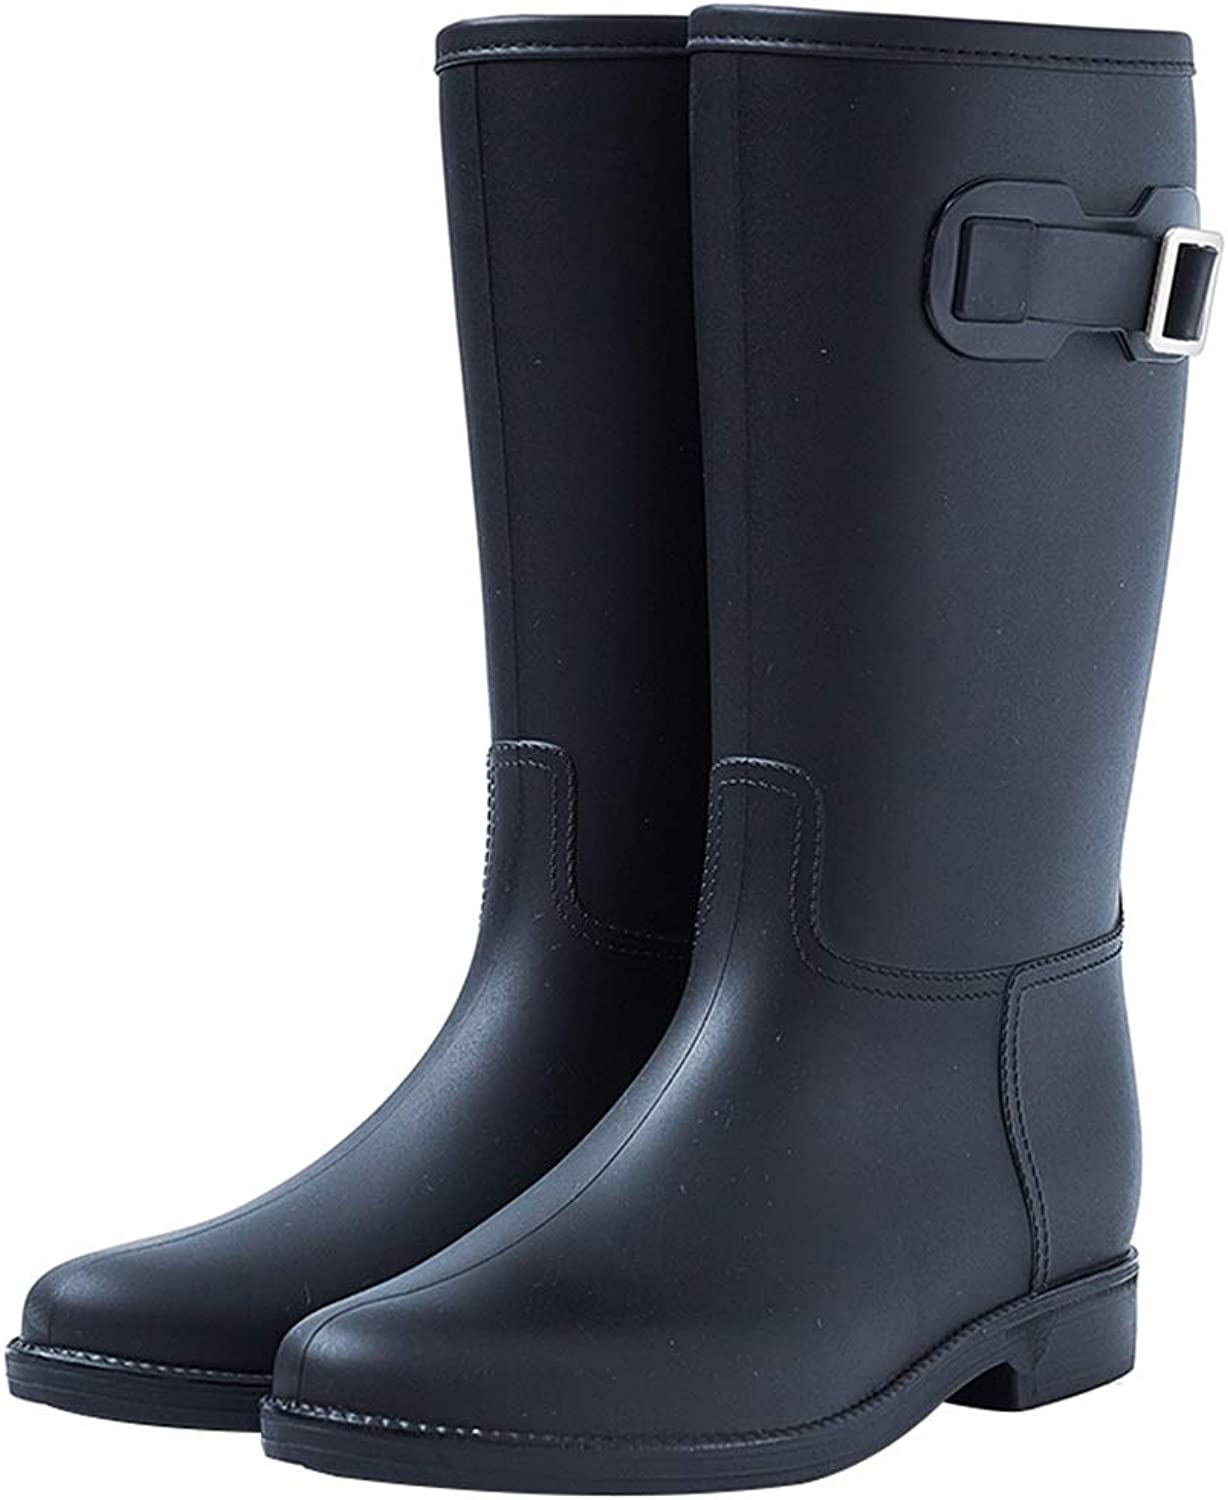 Bvilage Simple Rain shoes Women Adult Rubber Skid-Proof Flat Heeled Water Boots